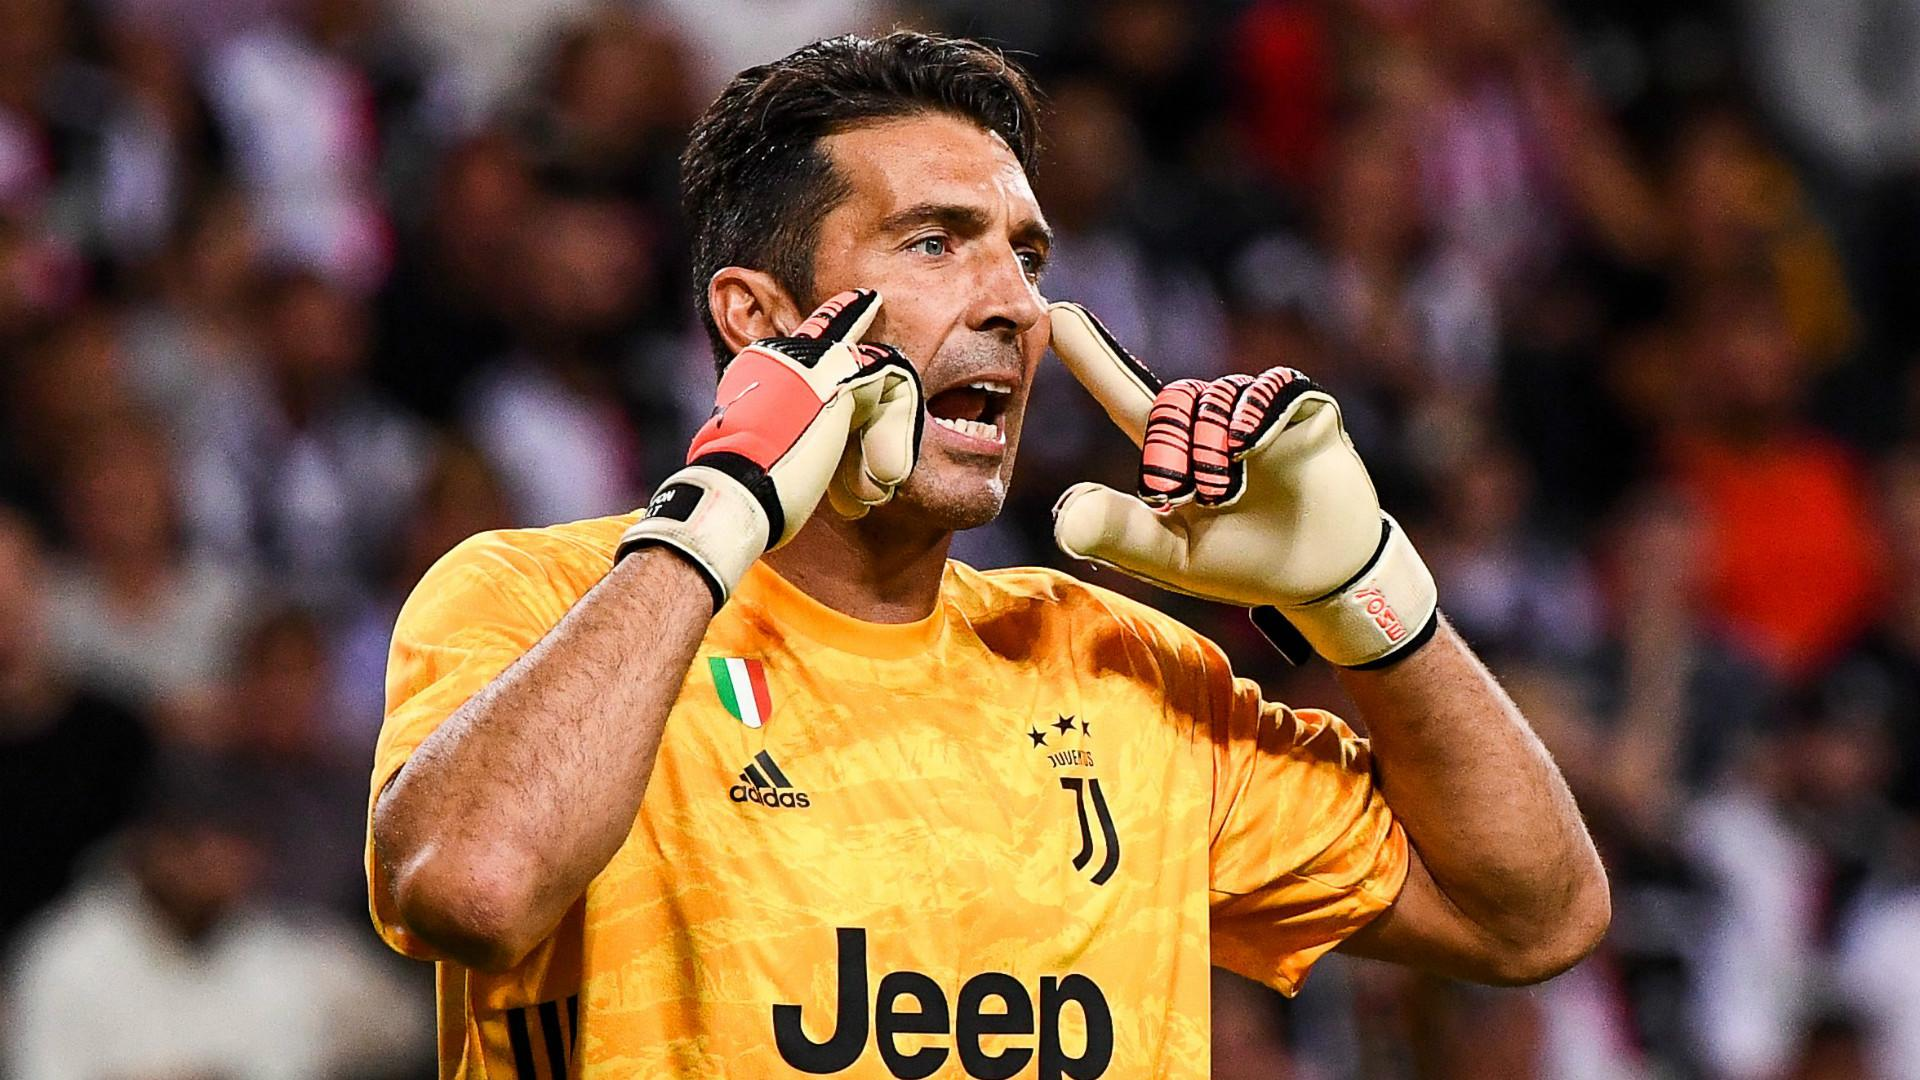 Buffon 'reliving youth' after agreeing Juventus extension at 42 years of age